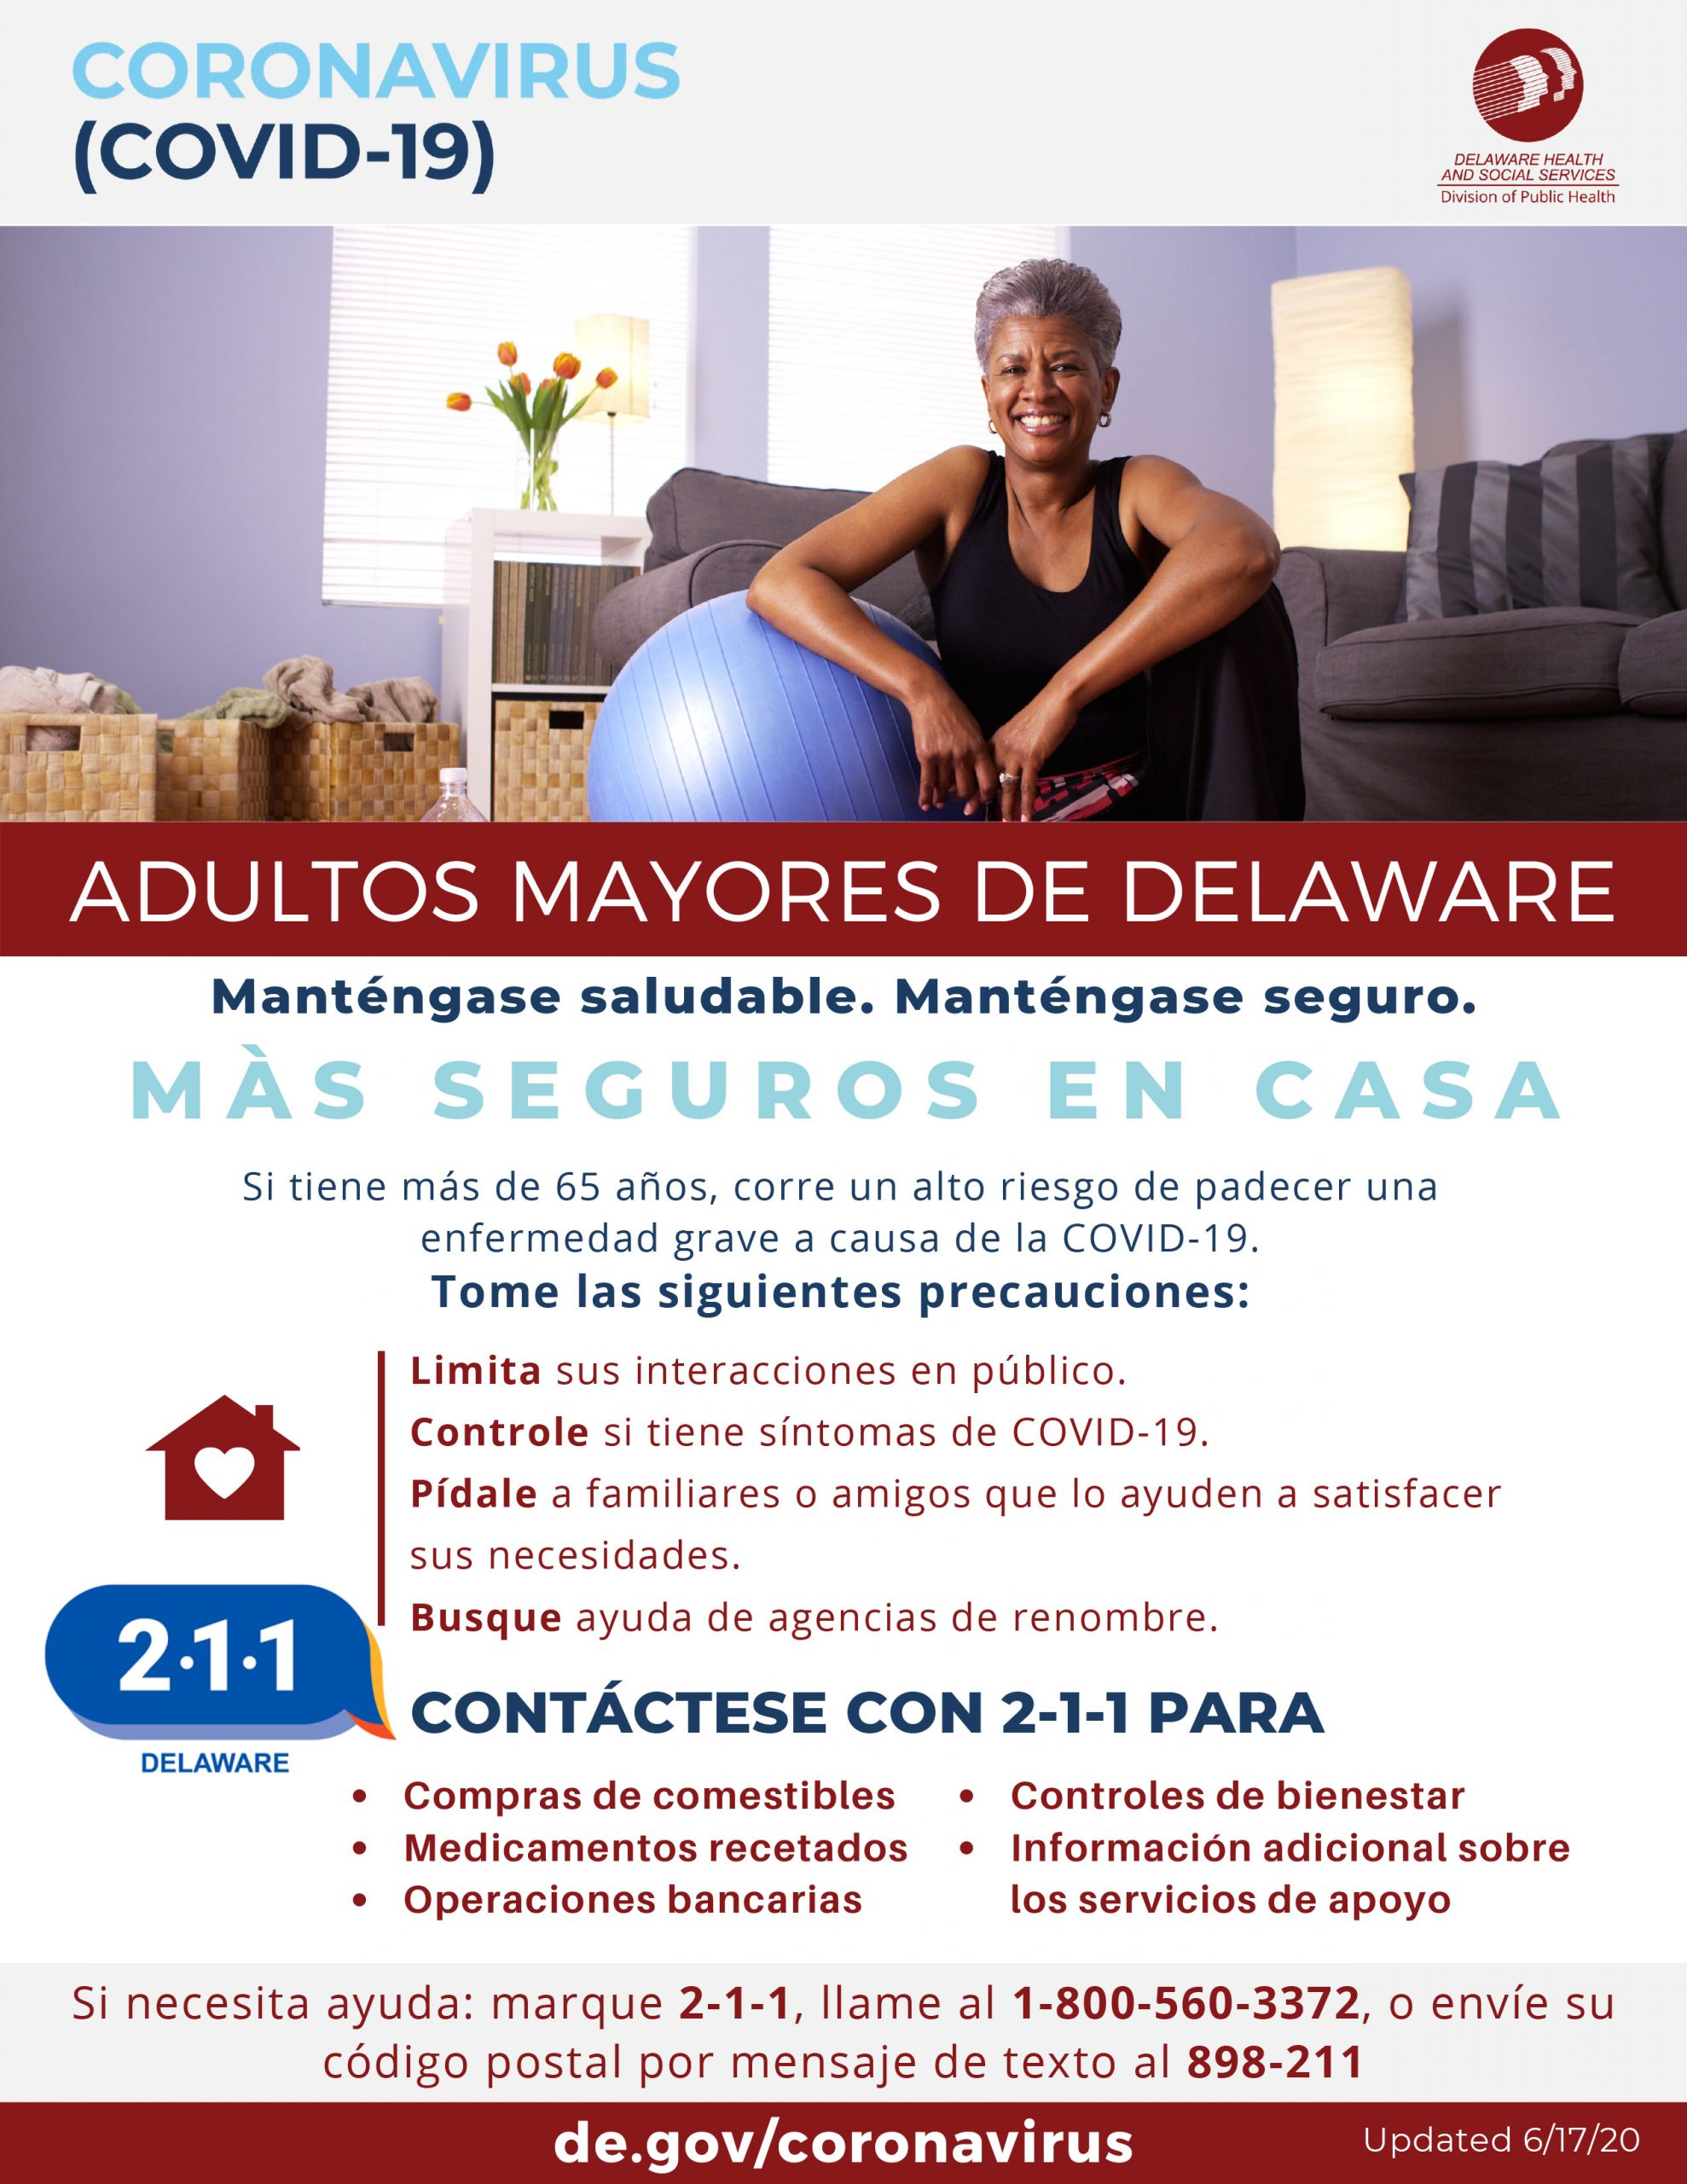 Delaware Seniors PSA Spanish Version